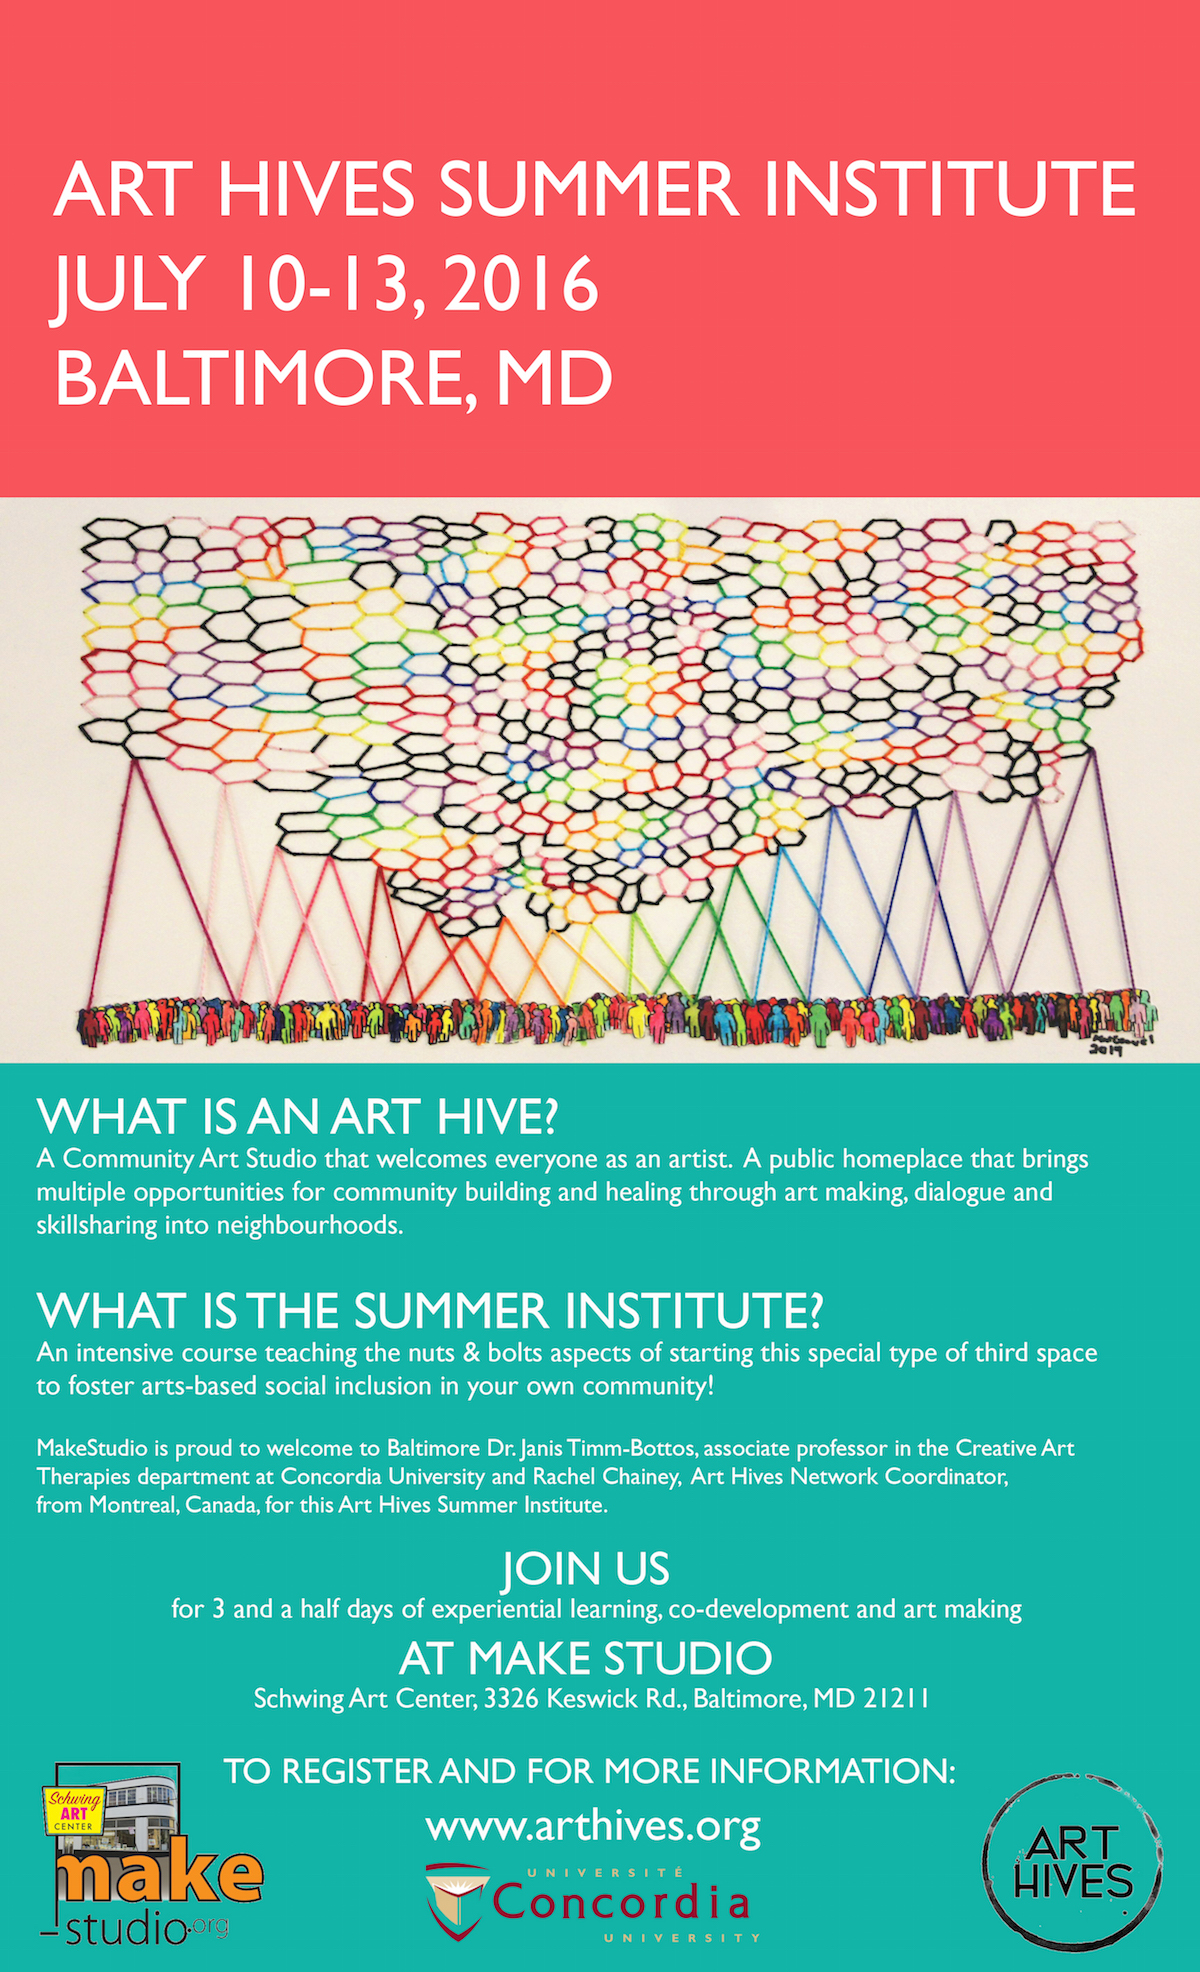 Art Hives Summer Institute Baltimore